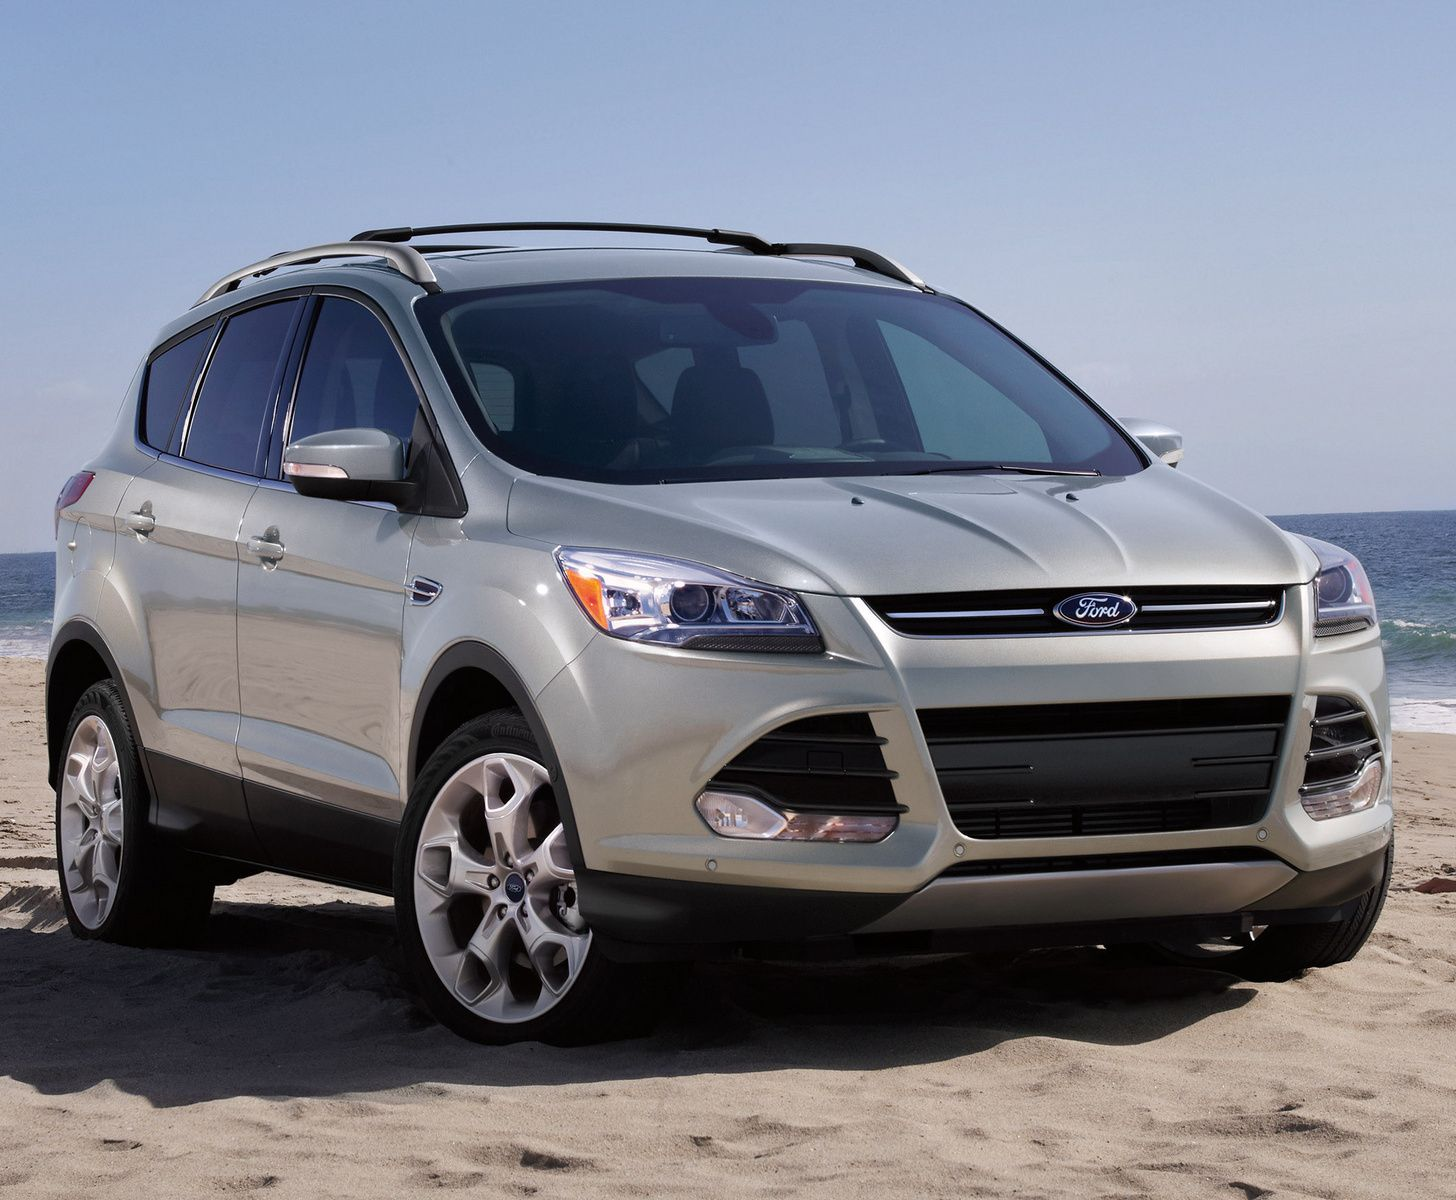 Ford Escape  Ford Escape  Pinterest  Ford 2014 ford explorer